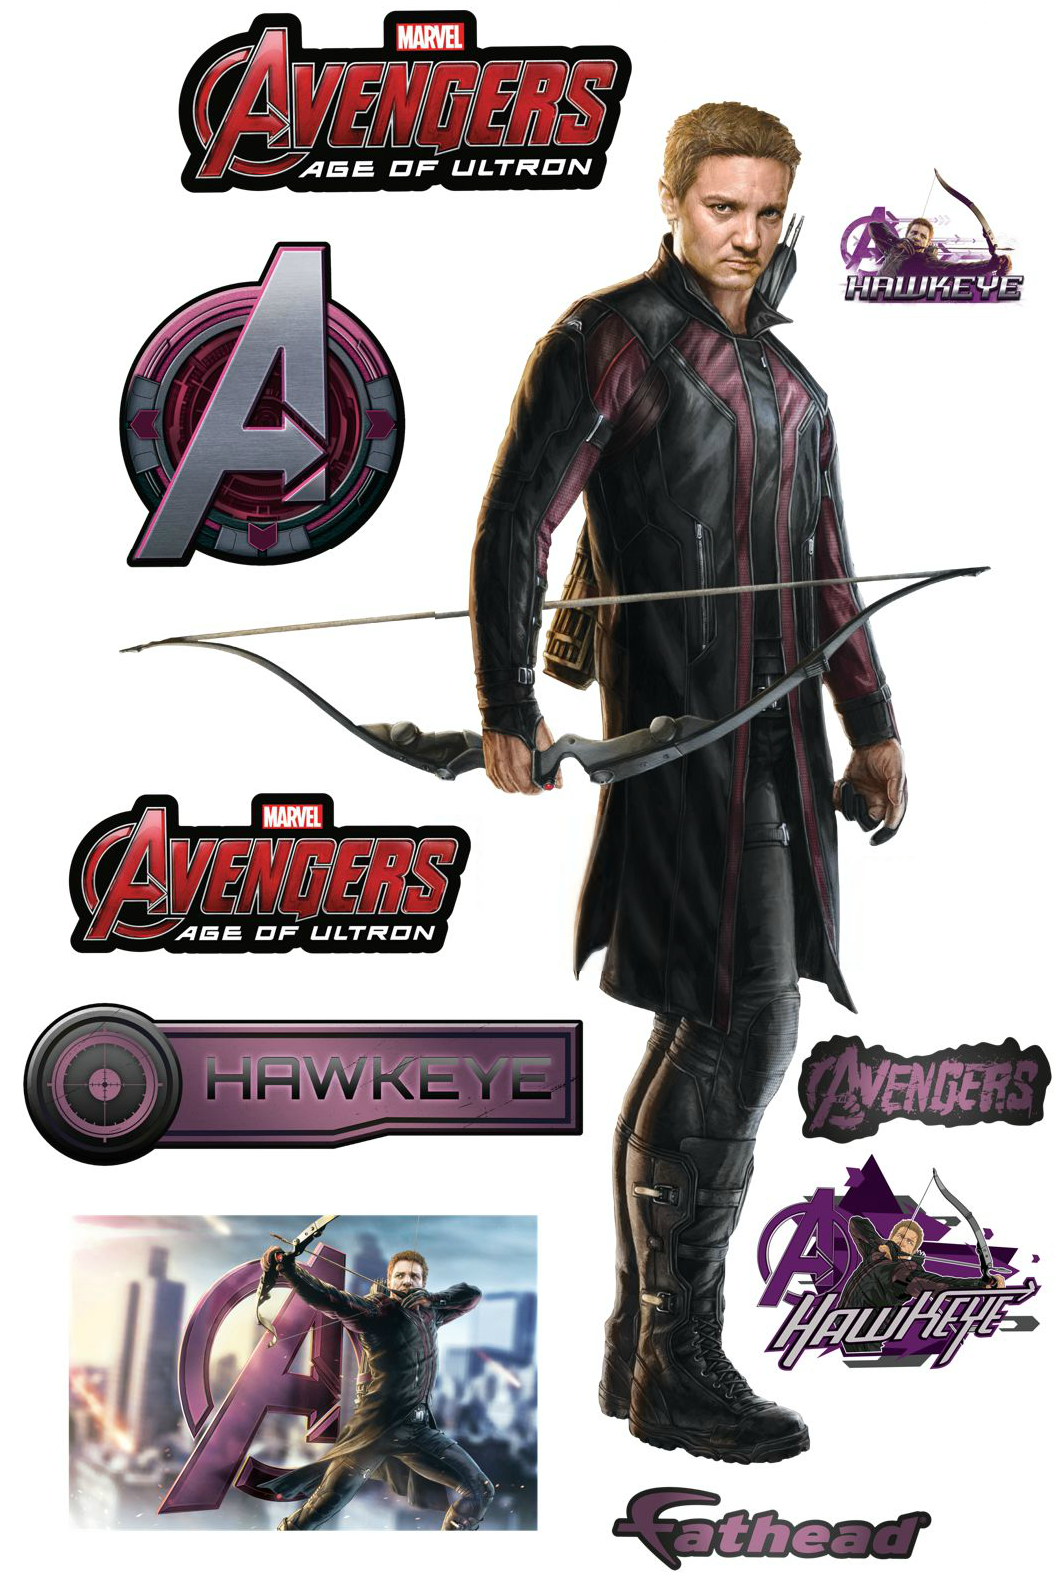 Avengers-Age-of-Ultron-Hawkeye-Fathead.png